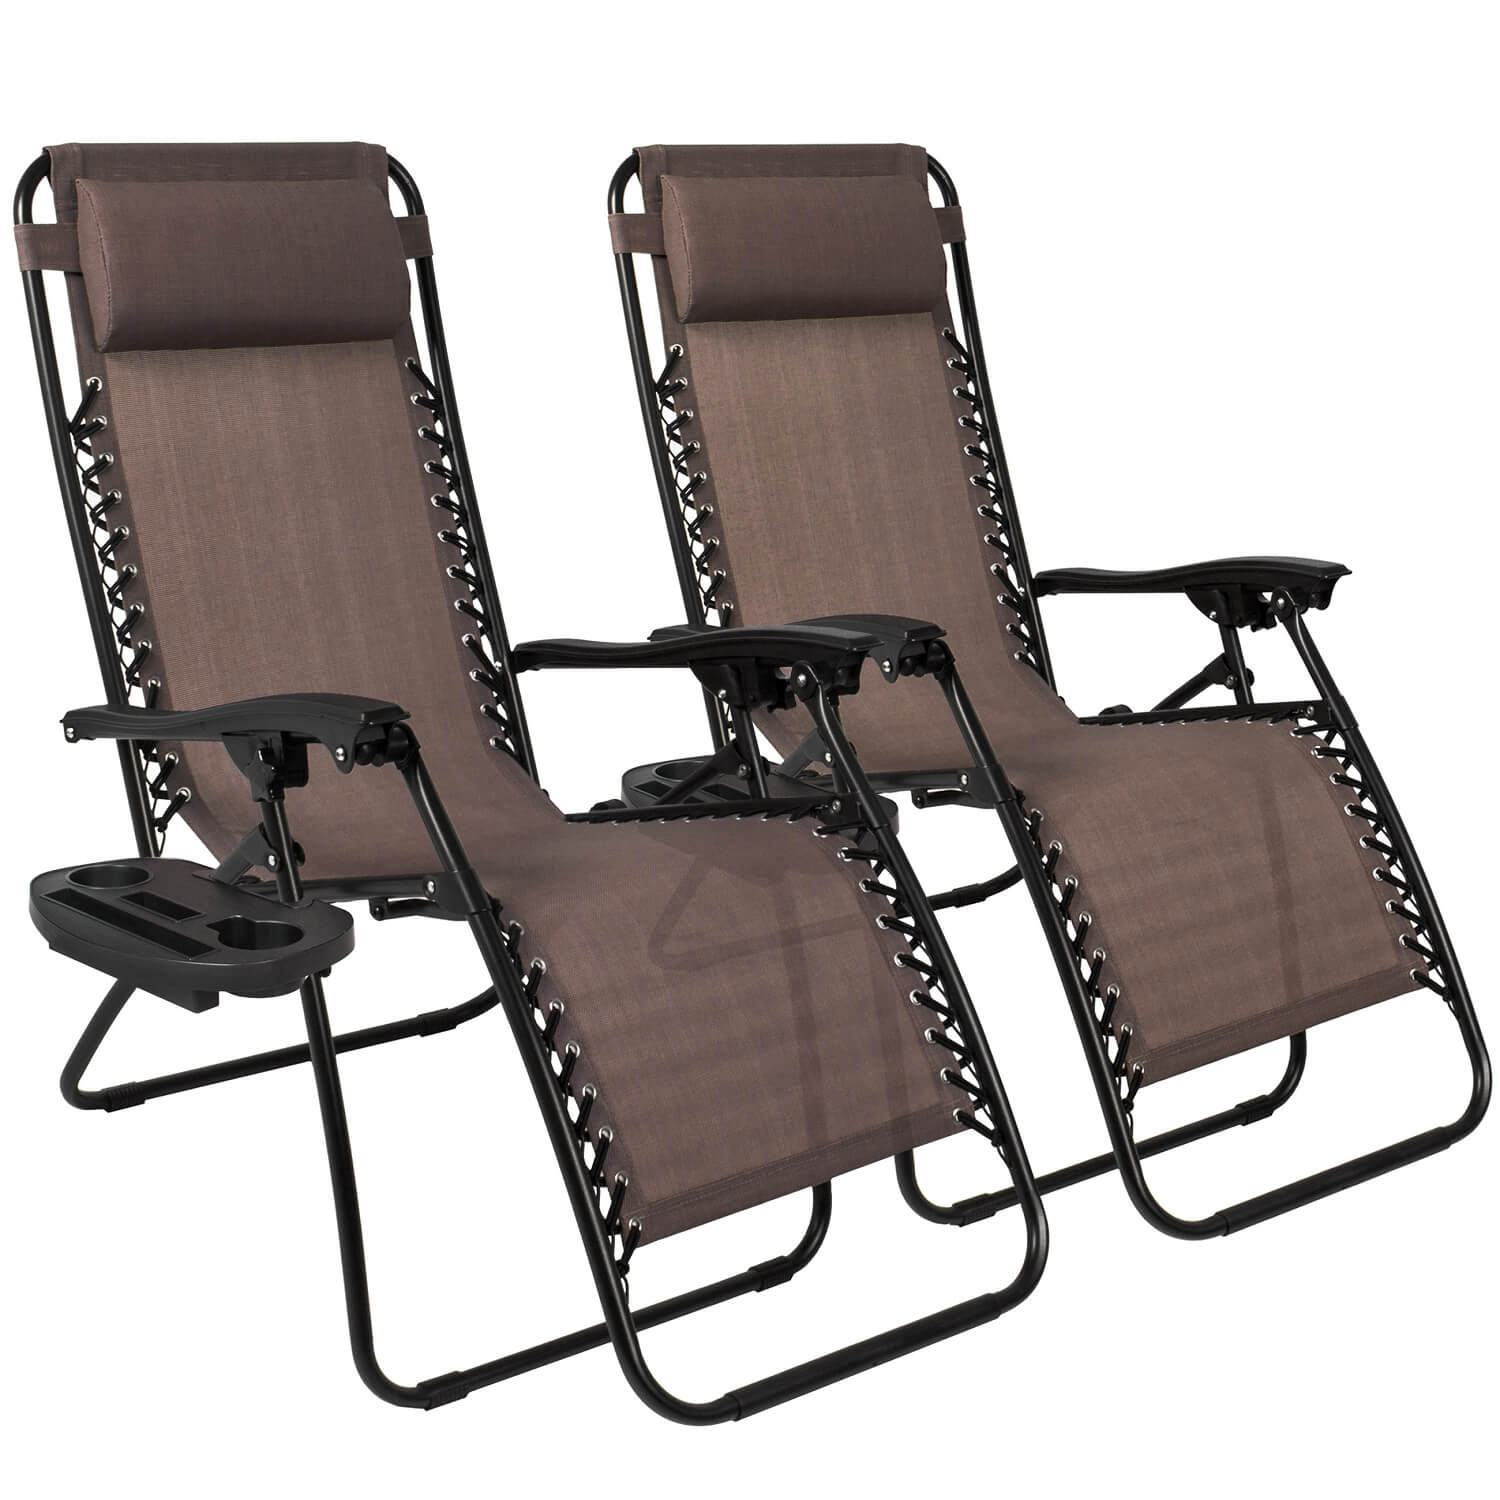 Best Zero Gravity Chairs Reviews & Buying Guide 2017